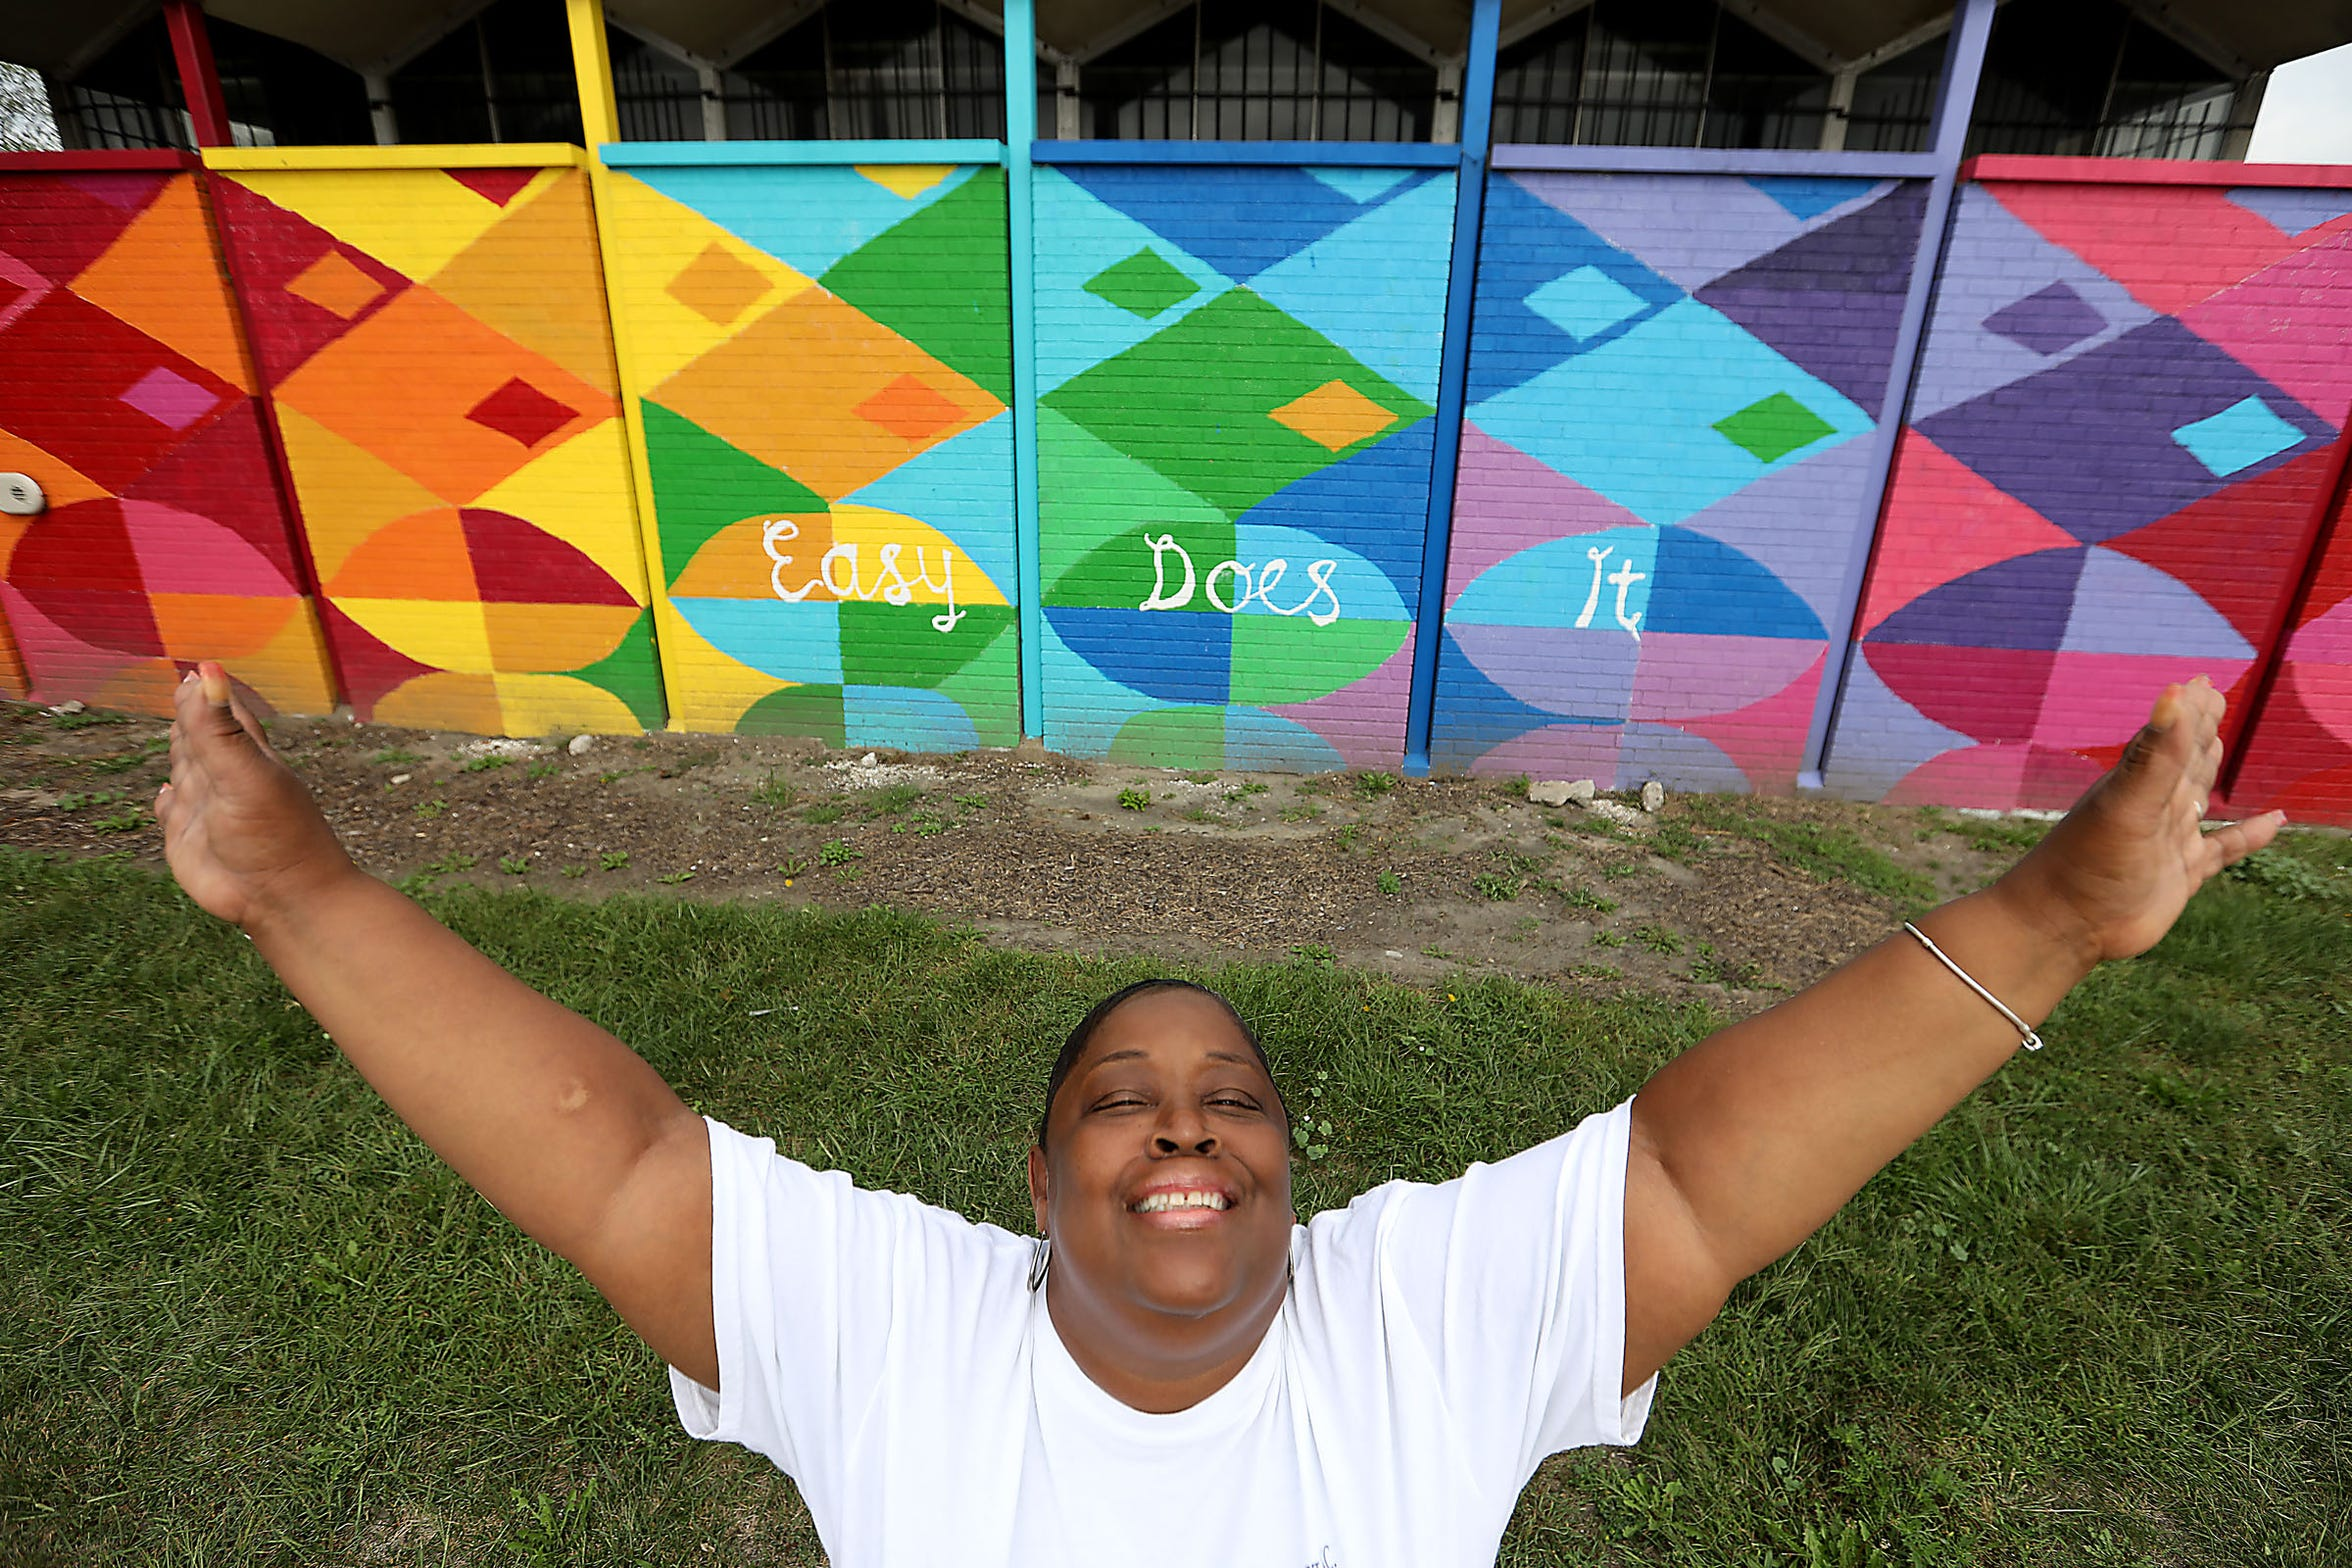 Stacia Cottrell-Scott, 54, of Detroit talks about living with a HIV diagnosis and being an advocate for those living with addiction and the consequences at the Detroit Recovery Project in Detroit on Wednesday, Sept. 19, 2018.